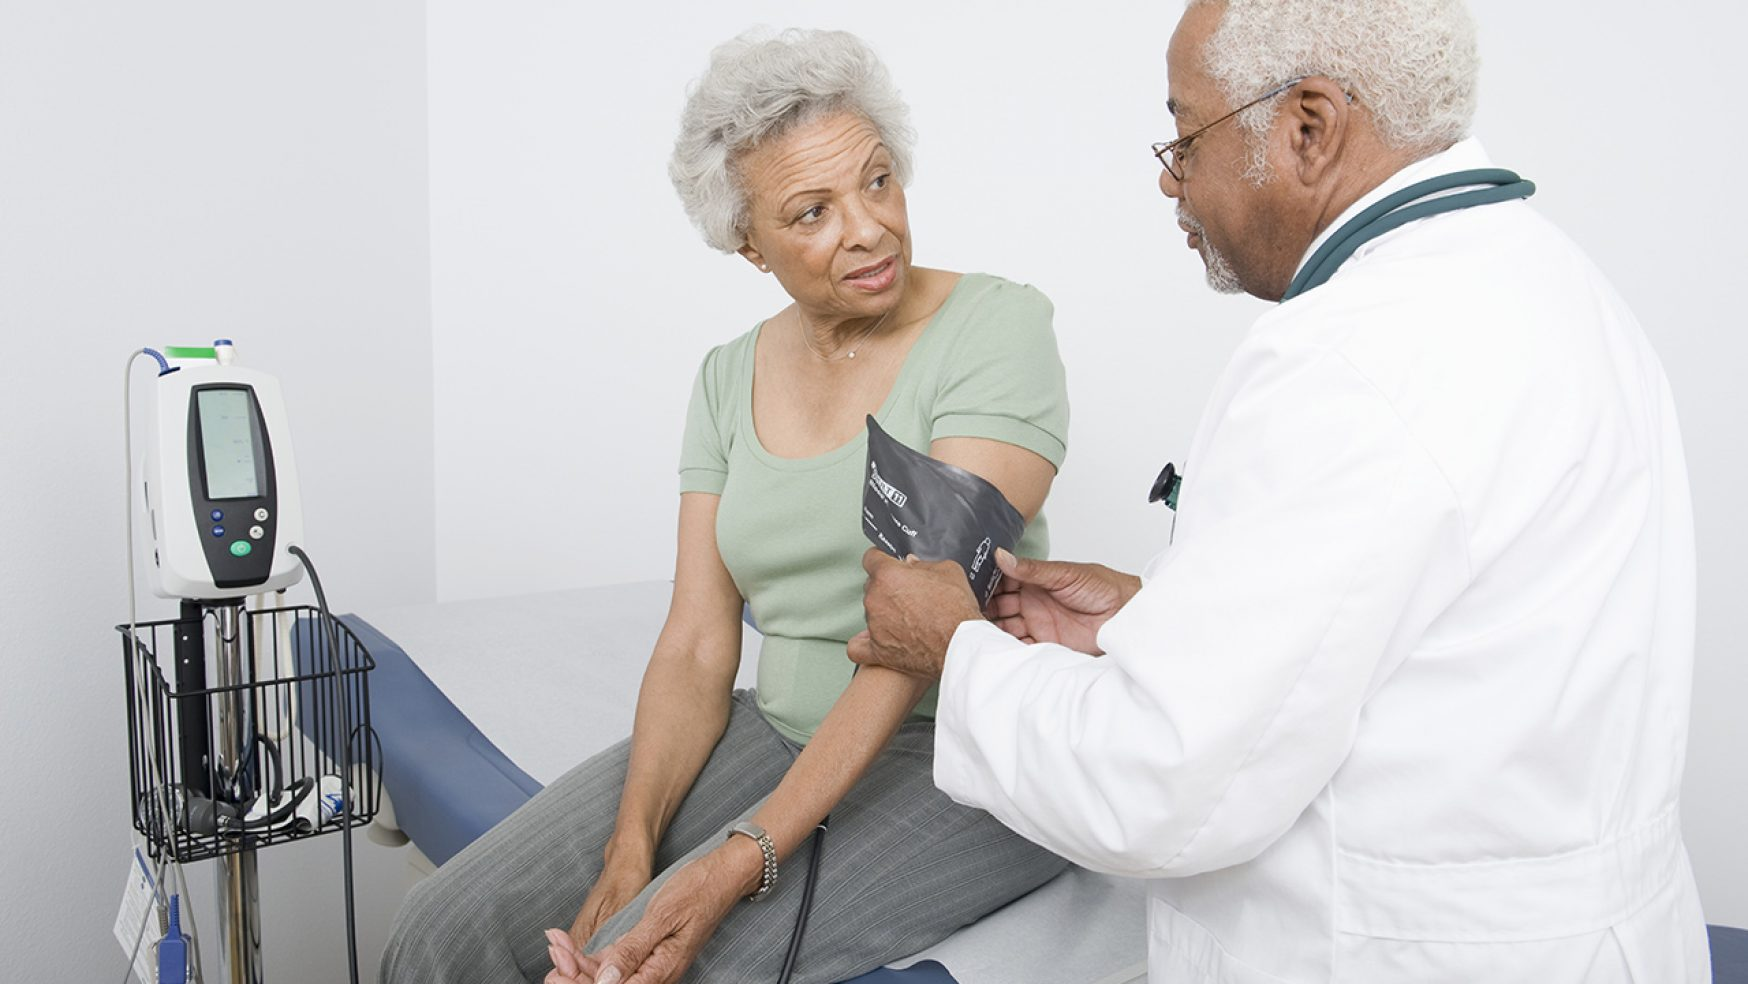 How do we know if we have Hypertension or high blood pressure and what causes it?